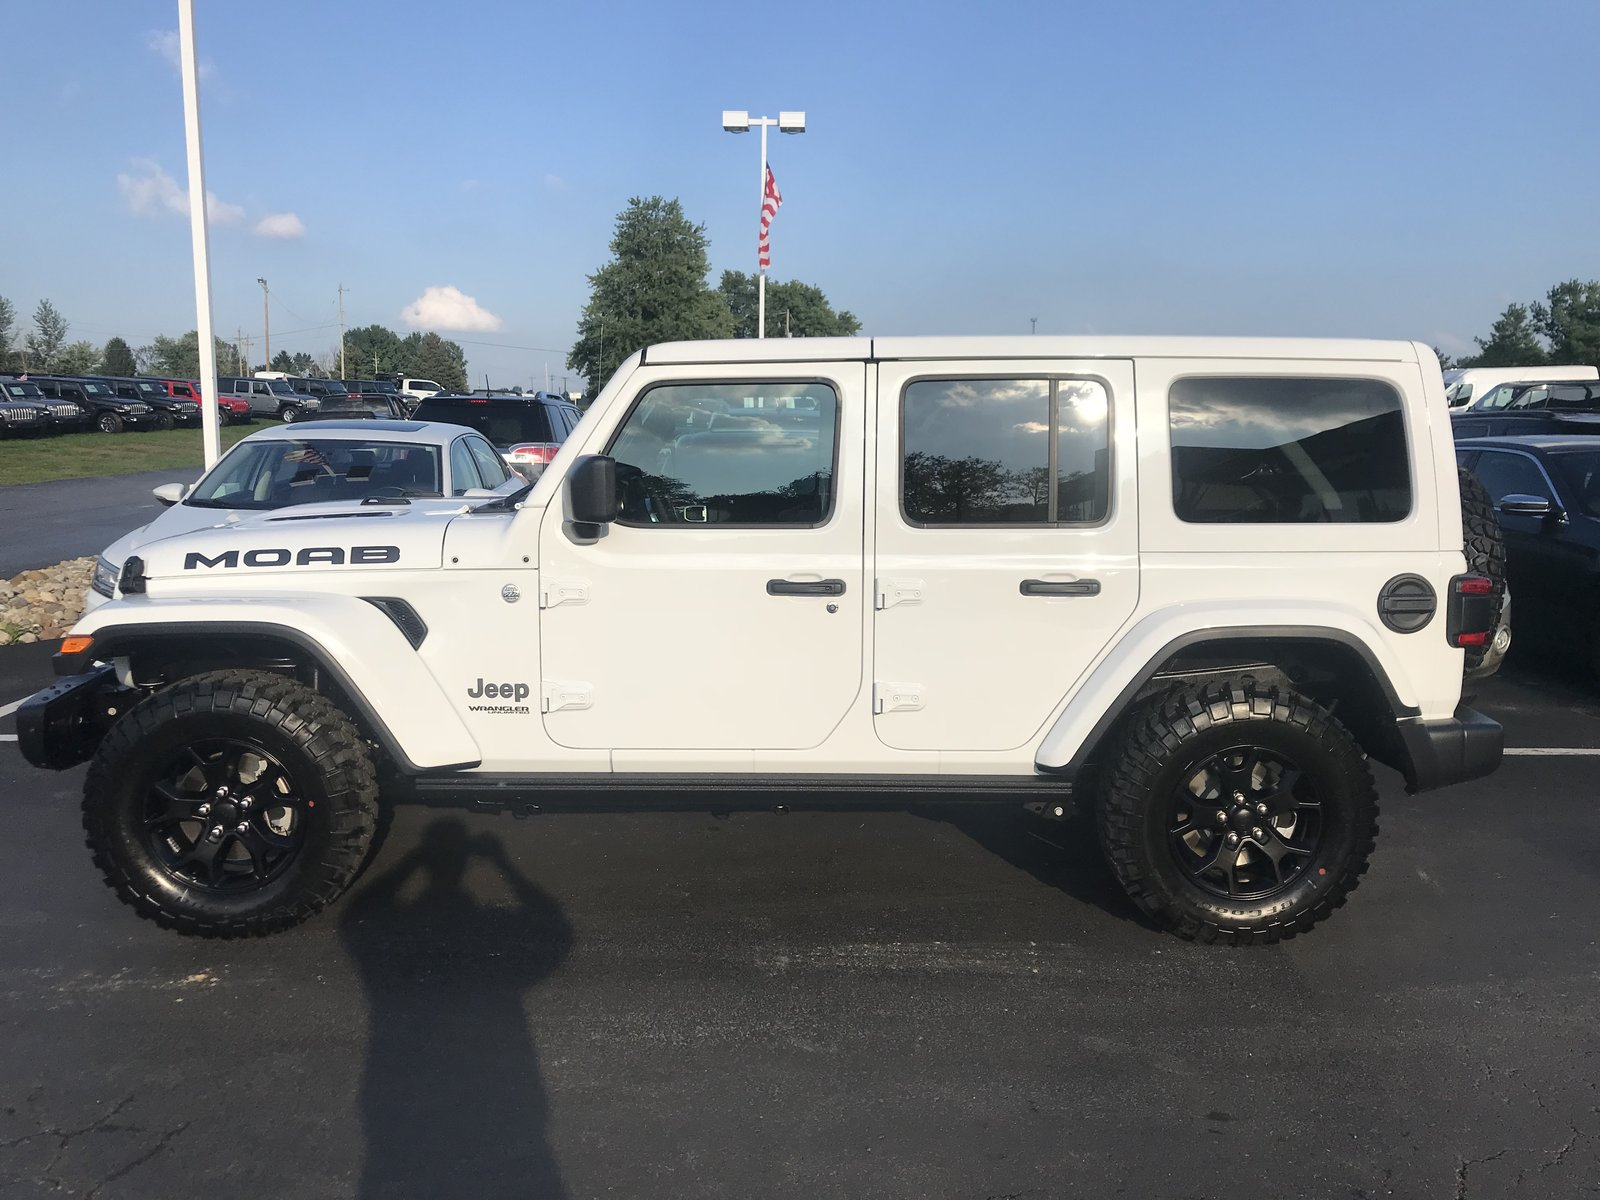 2018 Jeep Wrangler JL Moab Edition Official Specs And